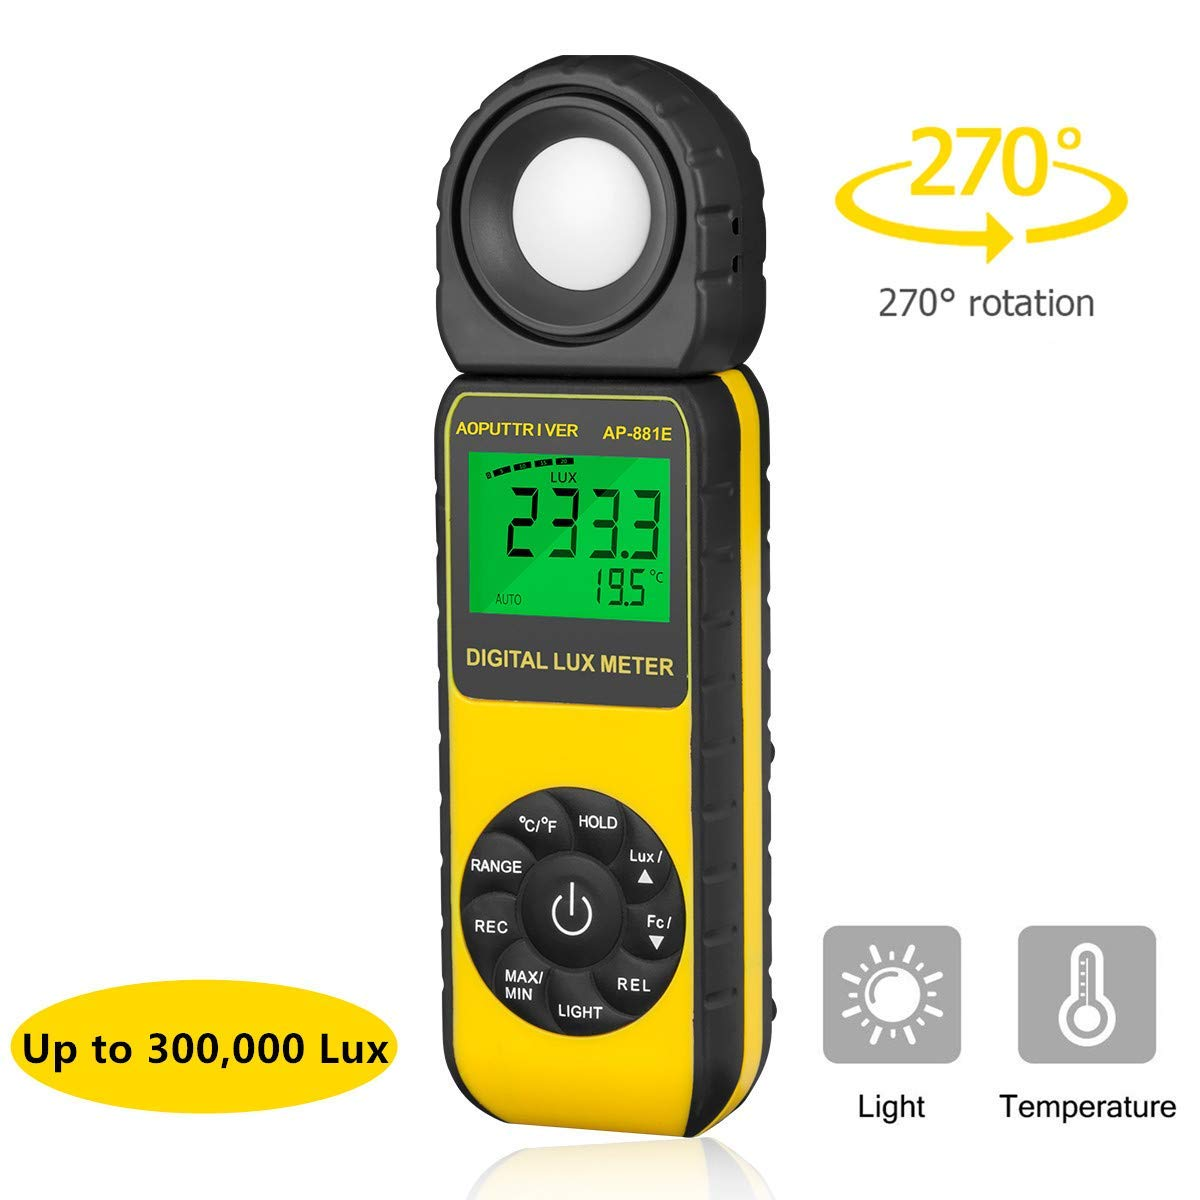 Digital Light Meter Illuminance Meter Lux Meters AP-881E with Display 3999(Range from 1~300,000Lux),Unit Lux/Fc,MAX/MIN,Back Light,Data Hold,Data Storage by AOPUTTRIVER